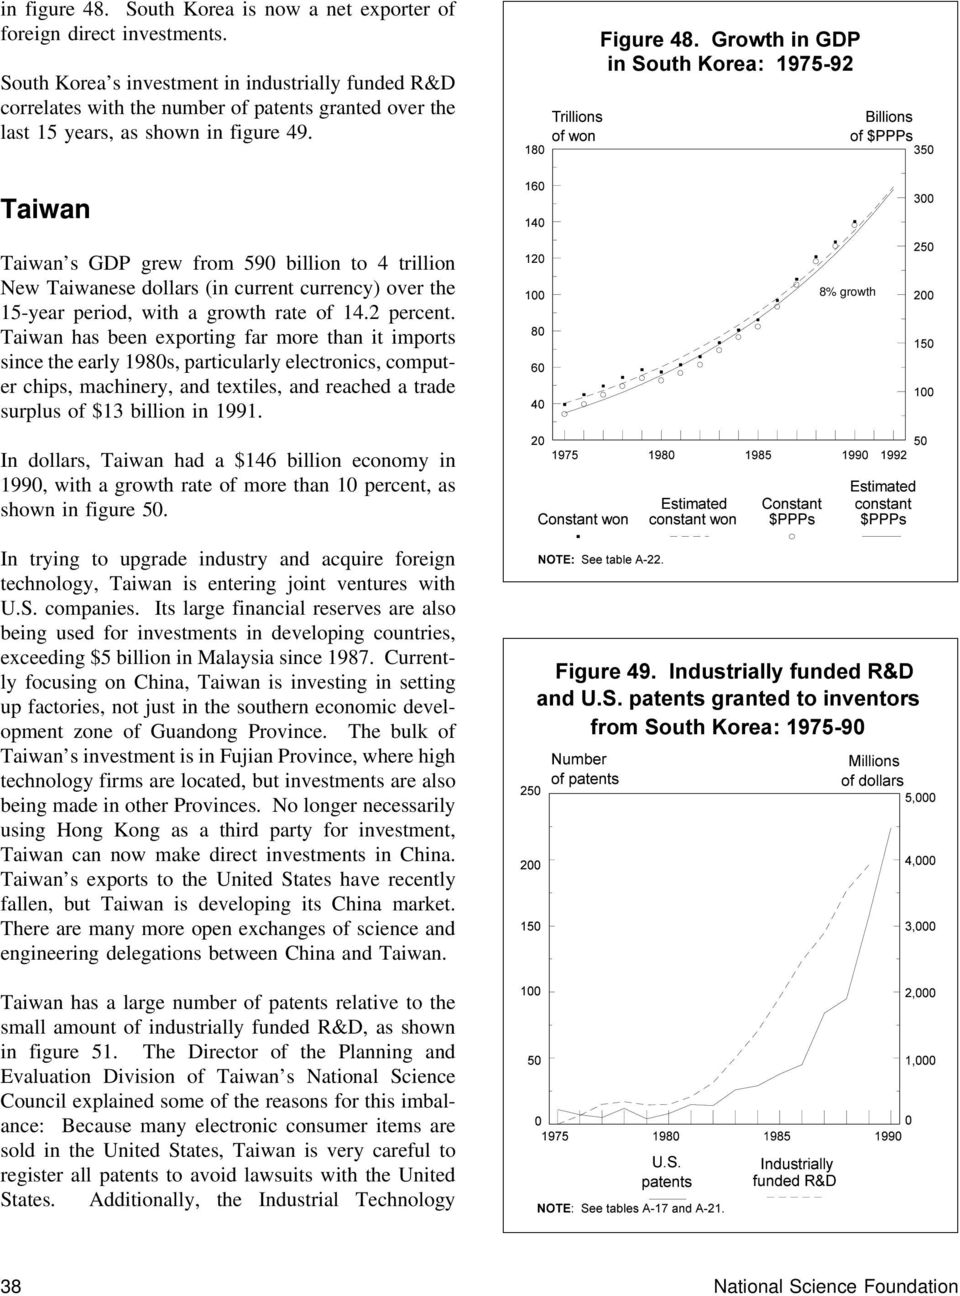 Growth in GDP in South Korea: 975-9 of 5 Taiwan 6 4 Taiwan s GDP grew from 59 billion to 4 trillion New Taiwanese dollars (in current currency) over the 5-year period, with a growth rate of 4.